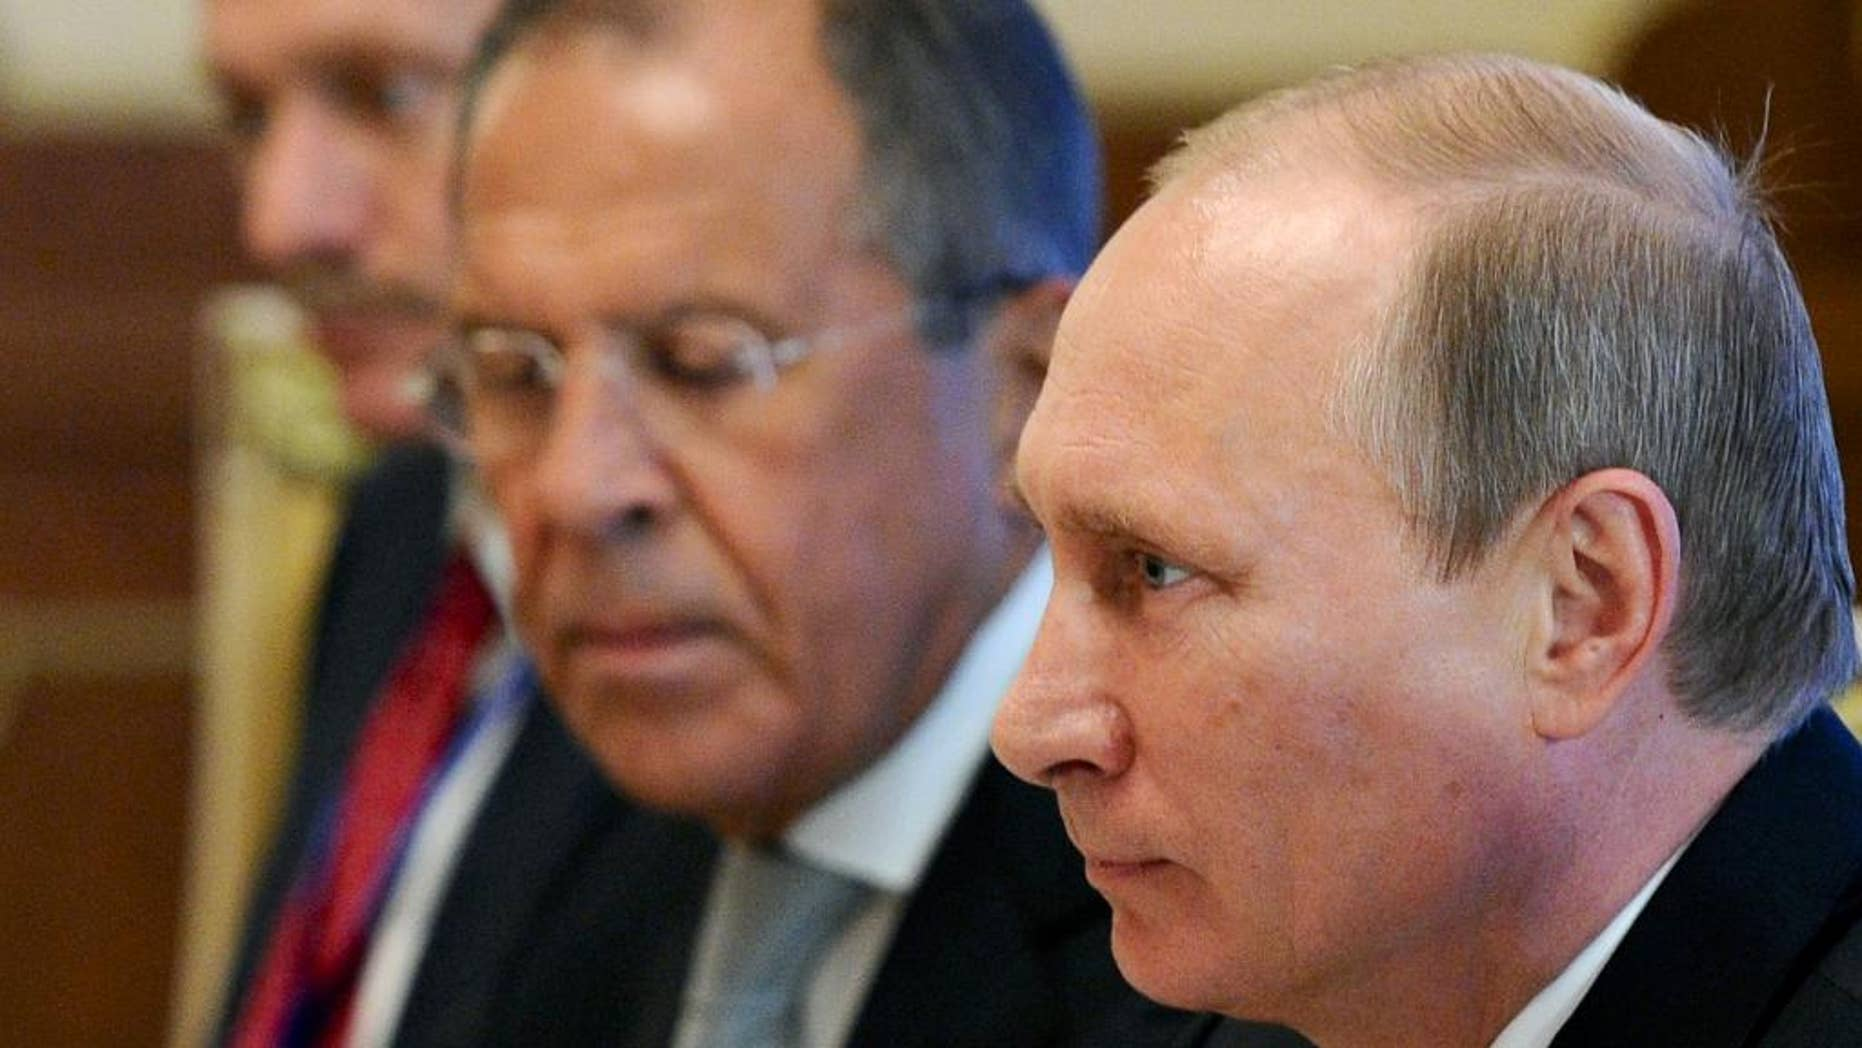 Sept. 11, 2014 - Russian President Vladimir Putin, right, speaks during his meeting with Chinese President Xi Jinping, at a summit in in Dushanbe, Tajikistan, as Russian Foreign Minister, Sergey Lavrov listens. New European Union sanctions against Russia announced Friday punish Moscow for what the West sees as efforts to destabilize Ukraine.